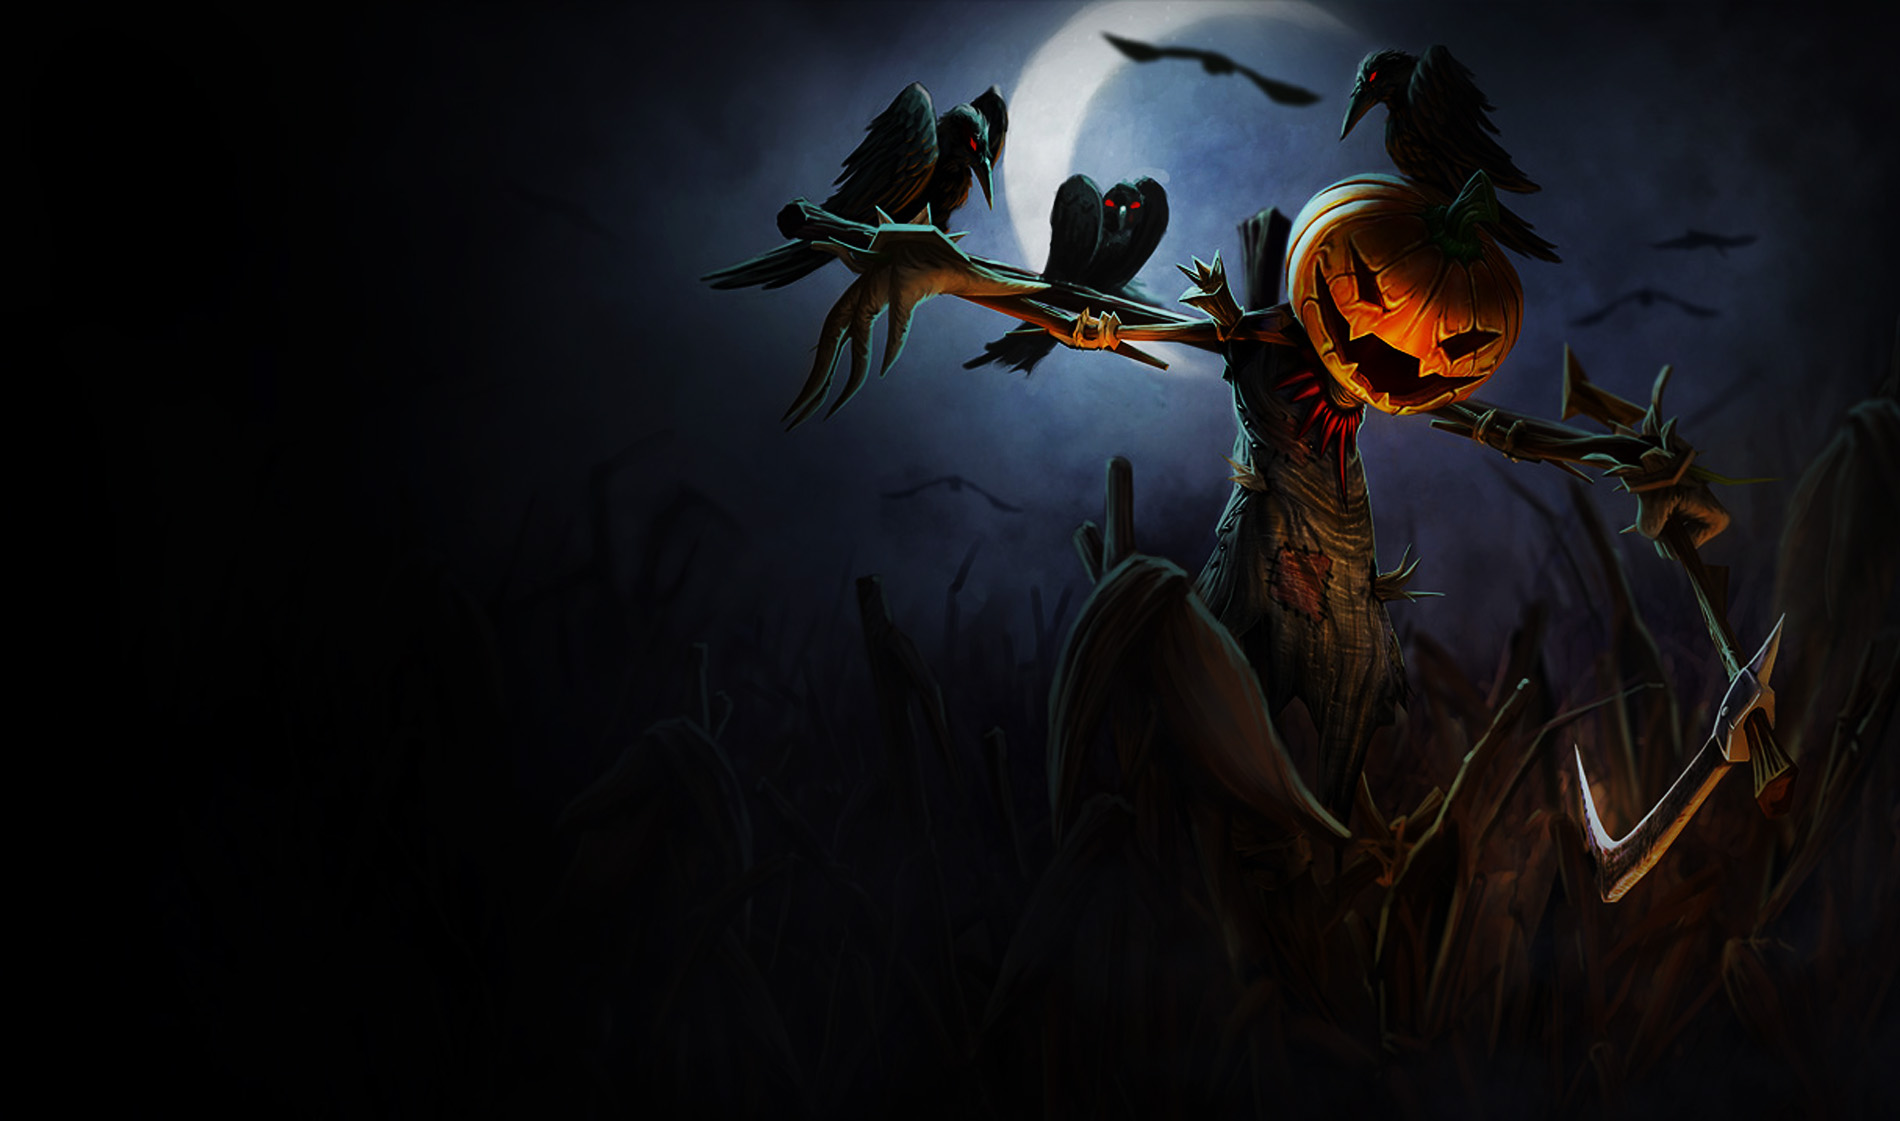 Fiddlesticks Wallpaper and Background | 1900x1121 | ID:381860